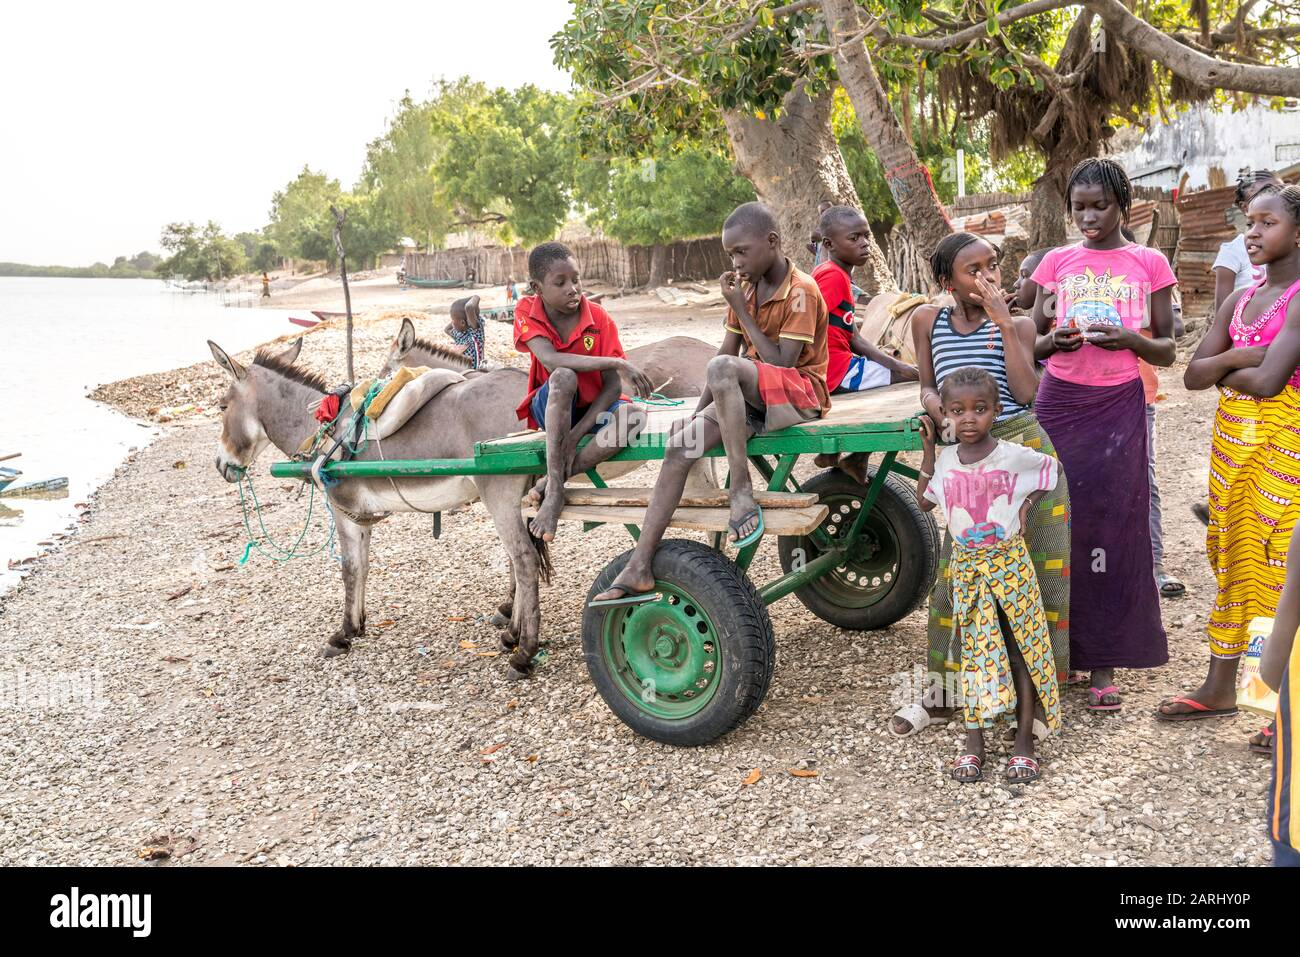 Kinder mit Eselskarren am Flussufer,  Insel Jinack Island, Gambia, Westafrika  |  children with donkey cart at the rivwer shore on Jinack Island, Gamb Stock Photo